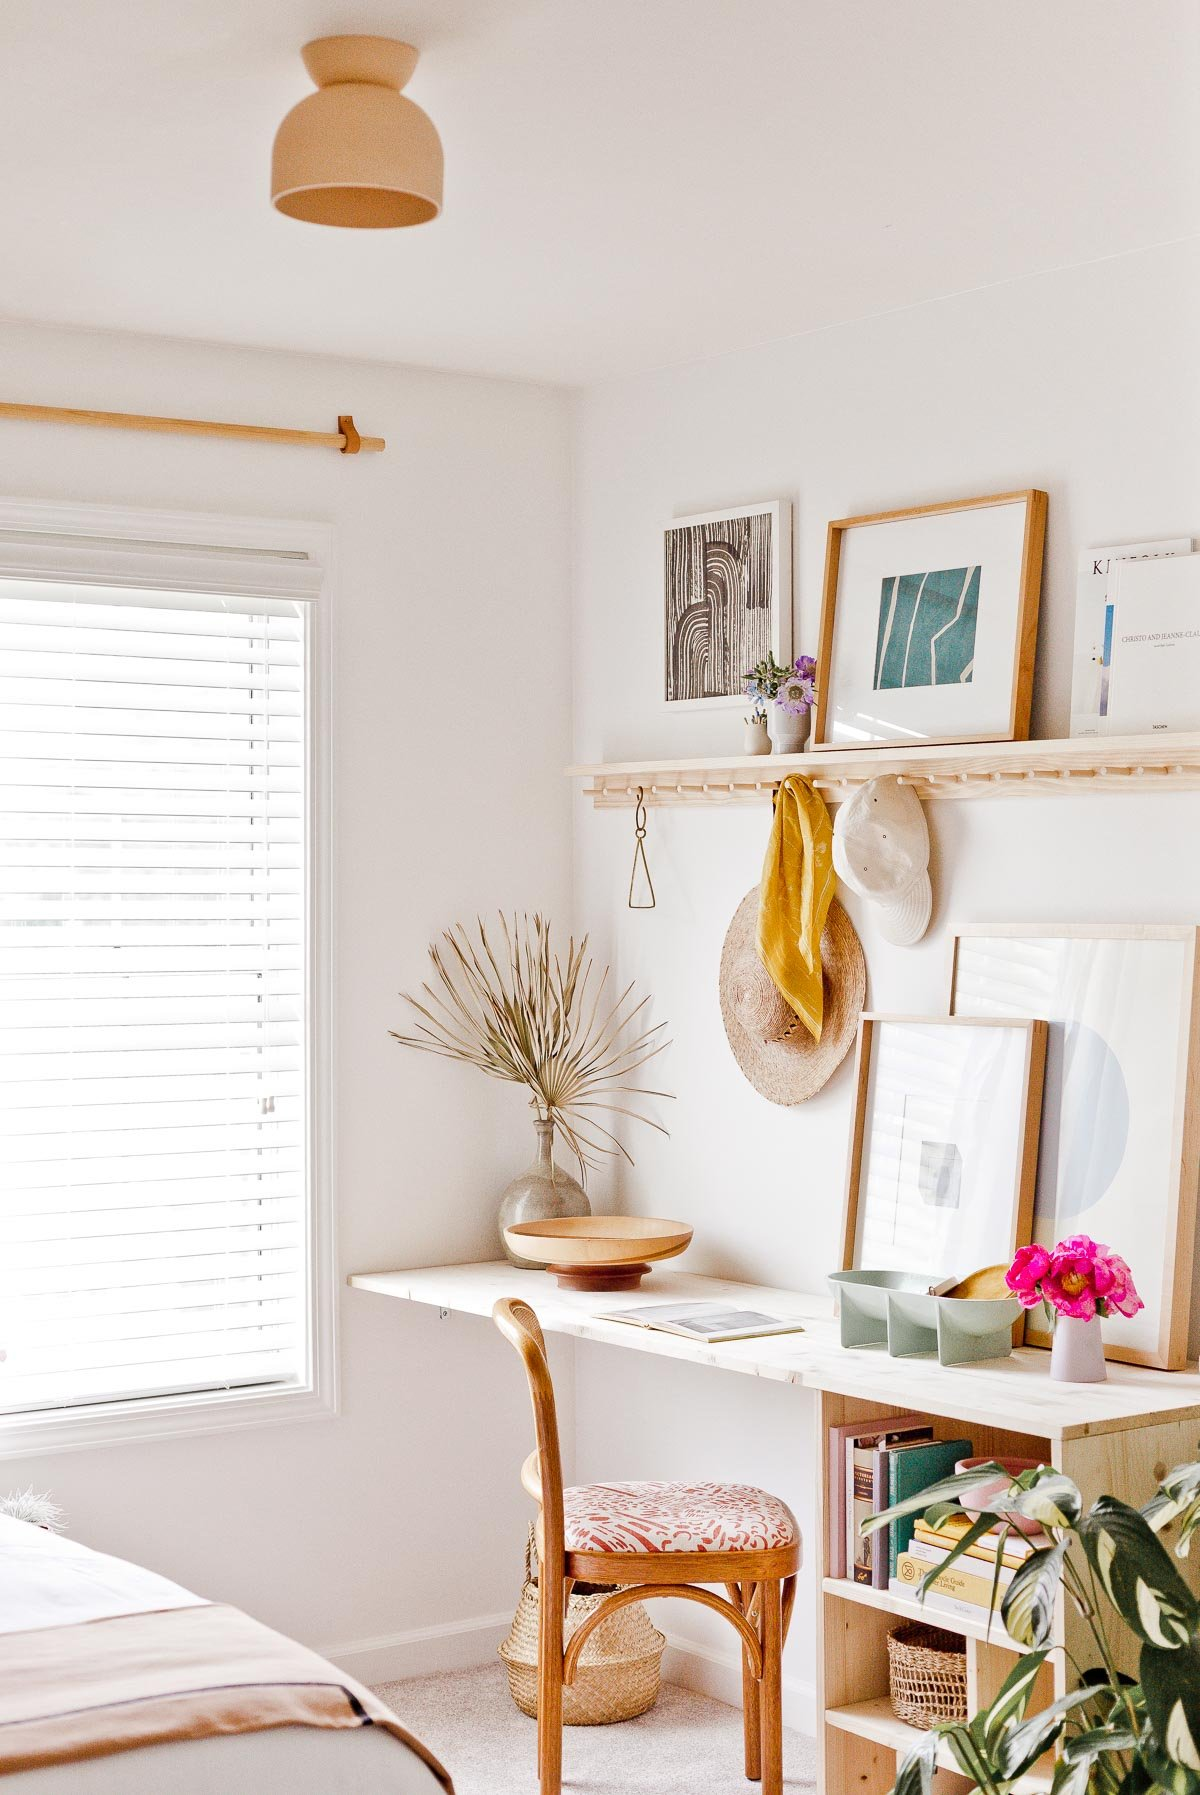 Learn how to build a simple, modern desk like this one for under $100. And explore this home office / guest room makeover designed by Brittni Mehlhoff of Paper and Stitch. #diy #diyfurniture #diydesk #desk #organicmodern #moderninterior #wooddesk #workspace #deskinspiration